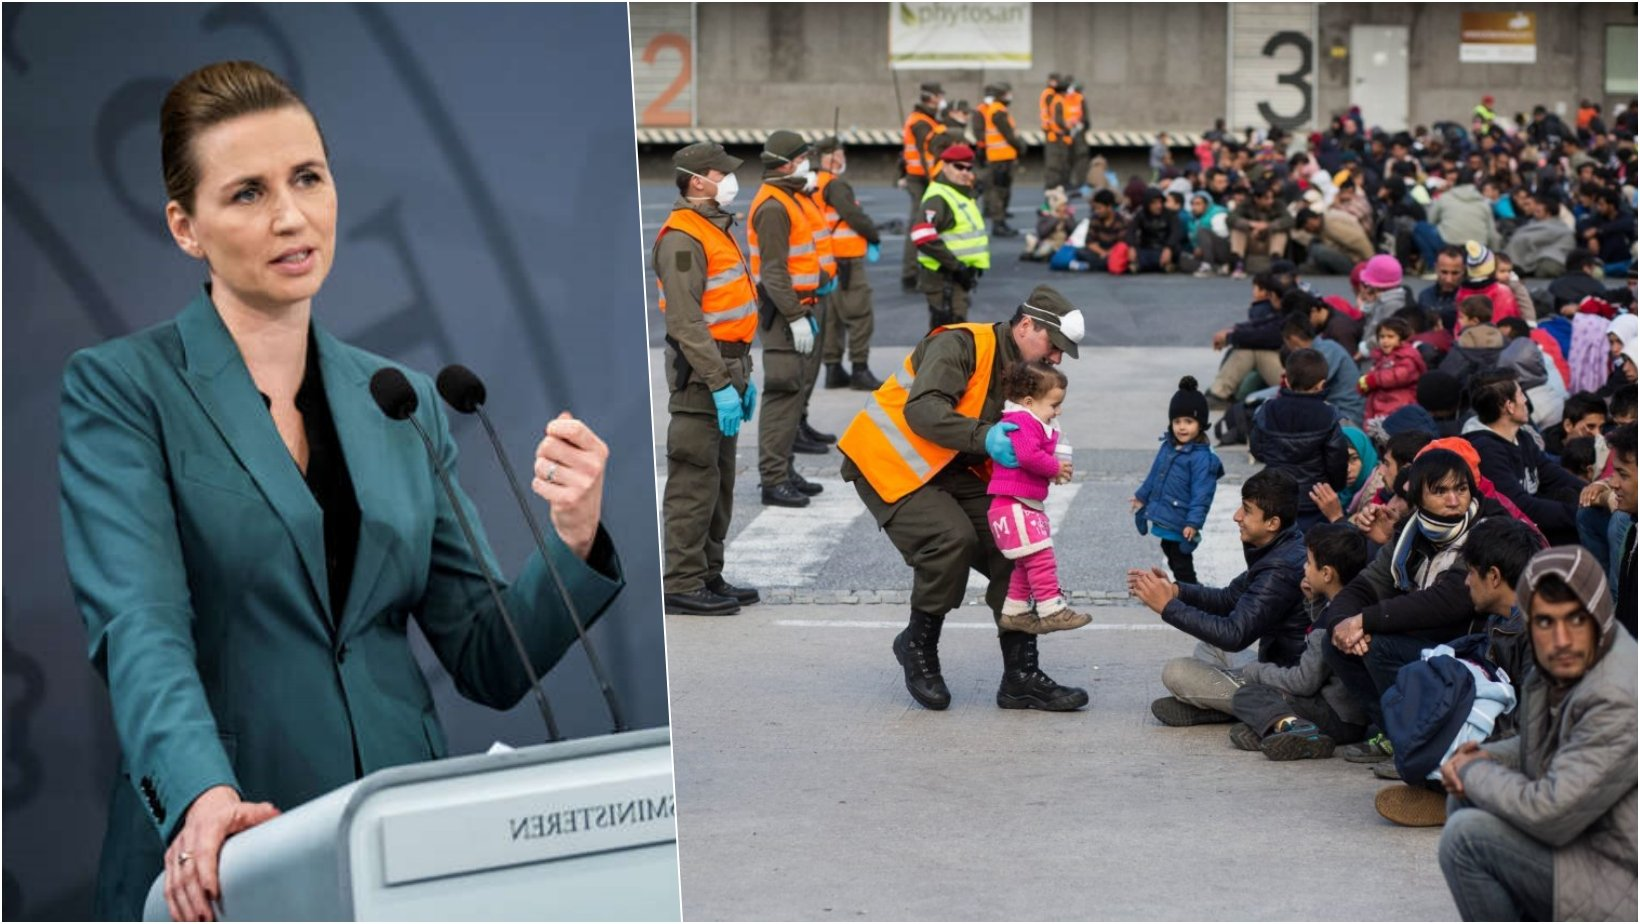 6 facebook cover 11.jpg?resize=412,275 - Denmark Plans To Make Migrants Work To Earn Welfare Benefits Because 'There Are Too Many Who Do Not Have A Job'